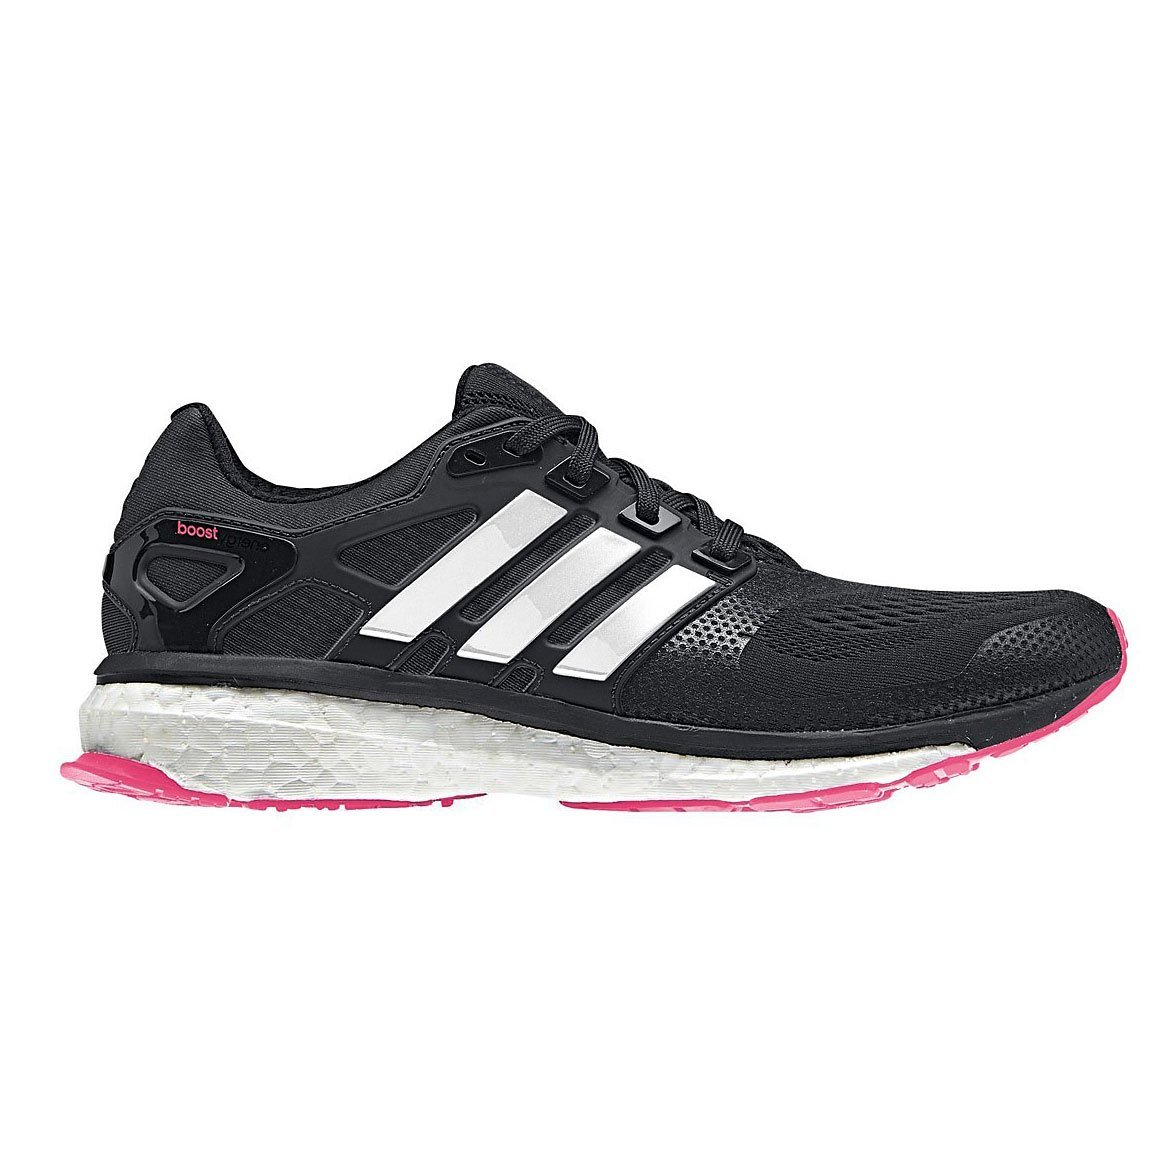 Adidas Performance energy boost 2 W Running Shoe